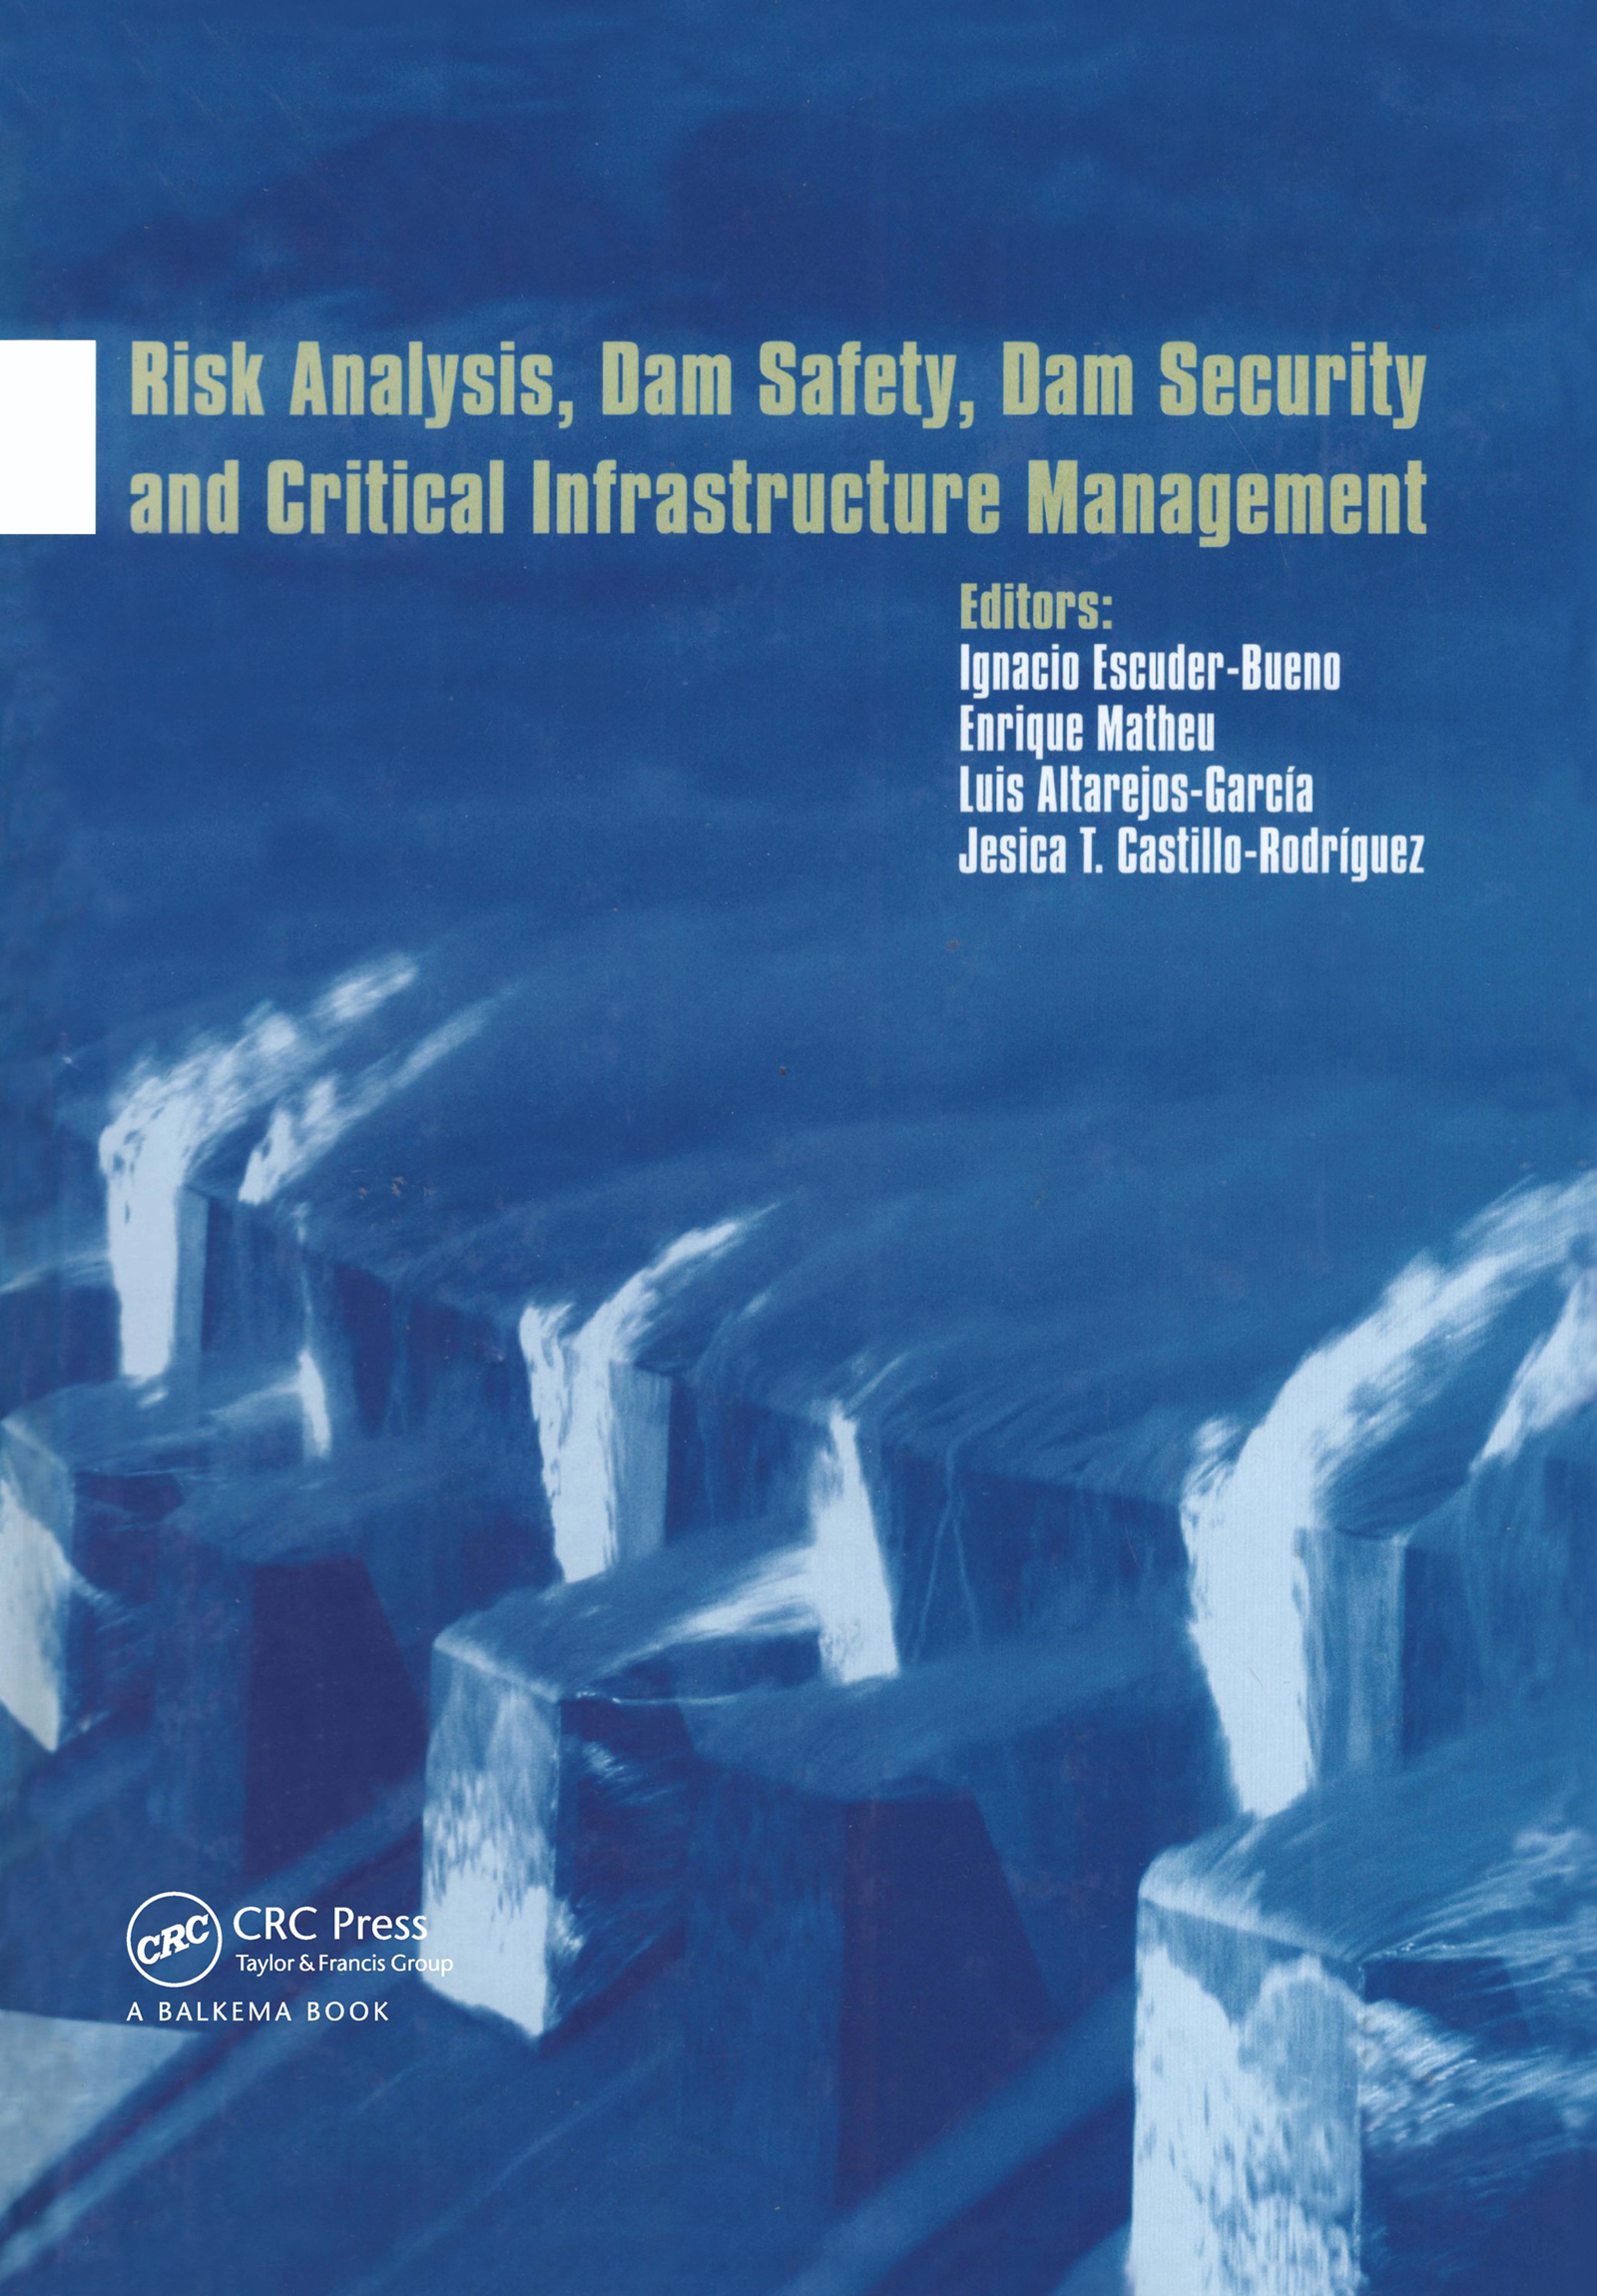 Risk Analysis, Dam Safety, Dam Security and Critical Infrastructure Management (Pack - Book and CD) book cover